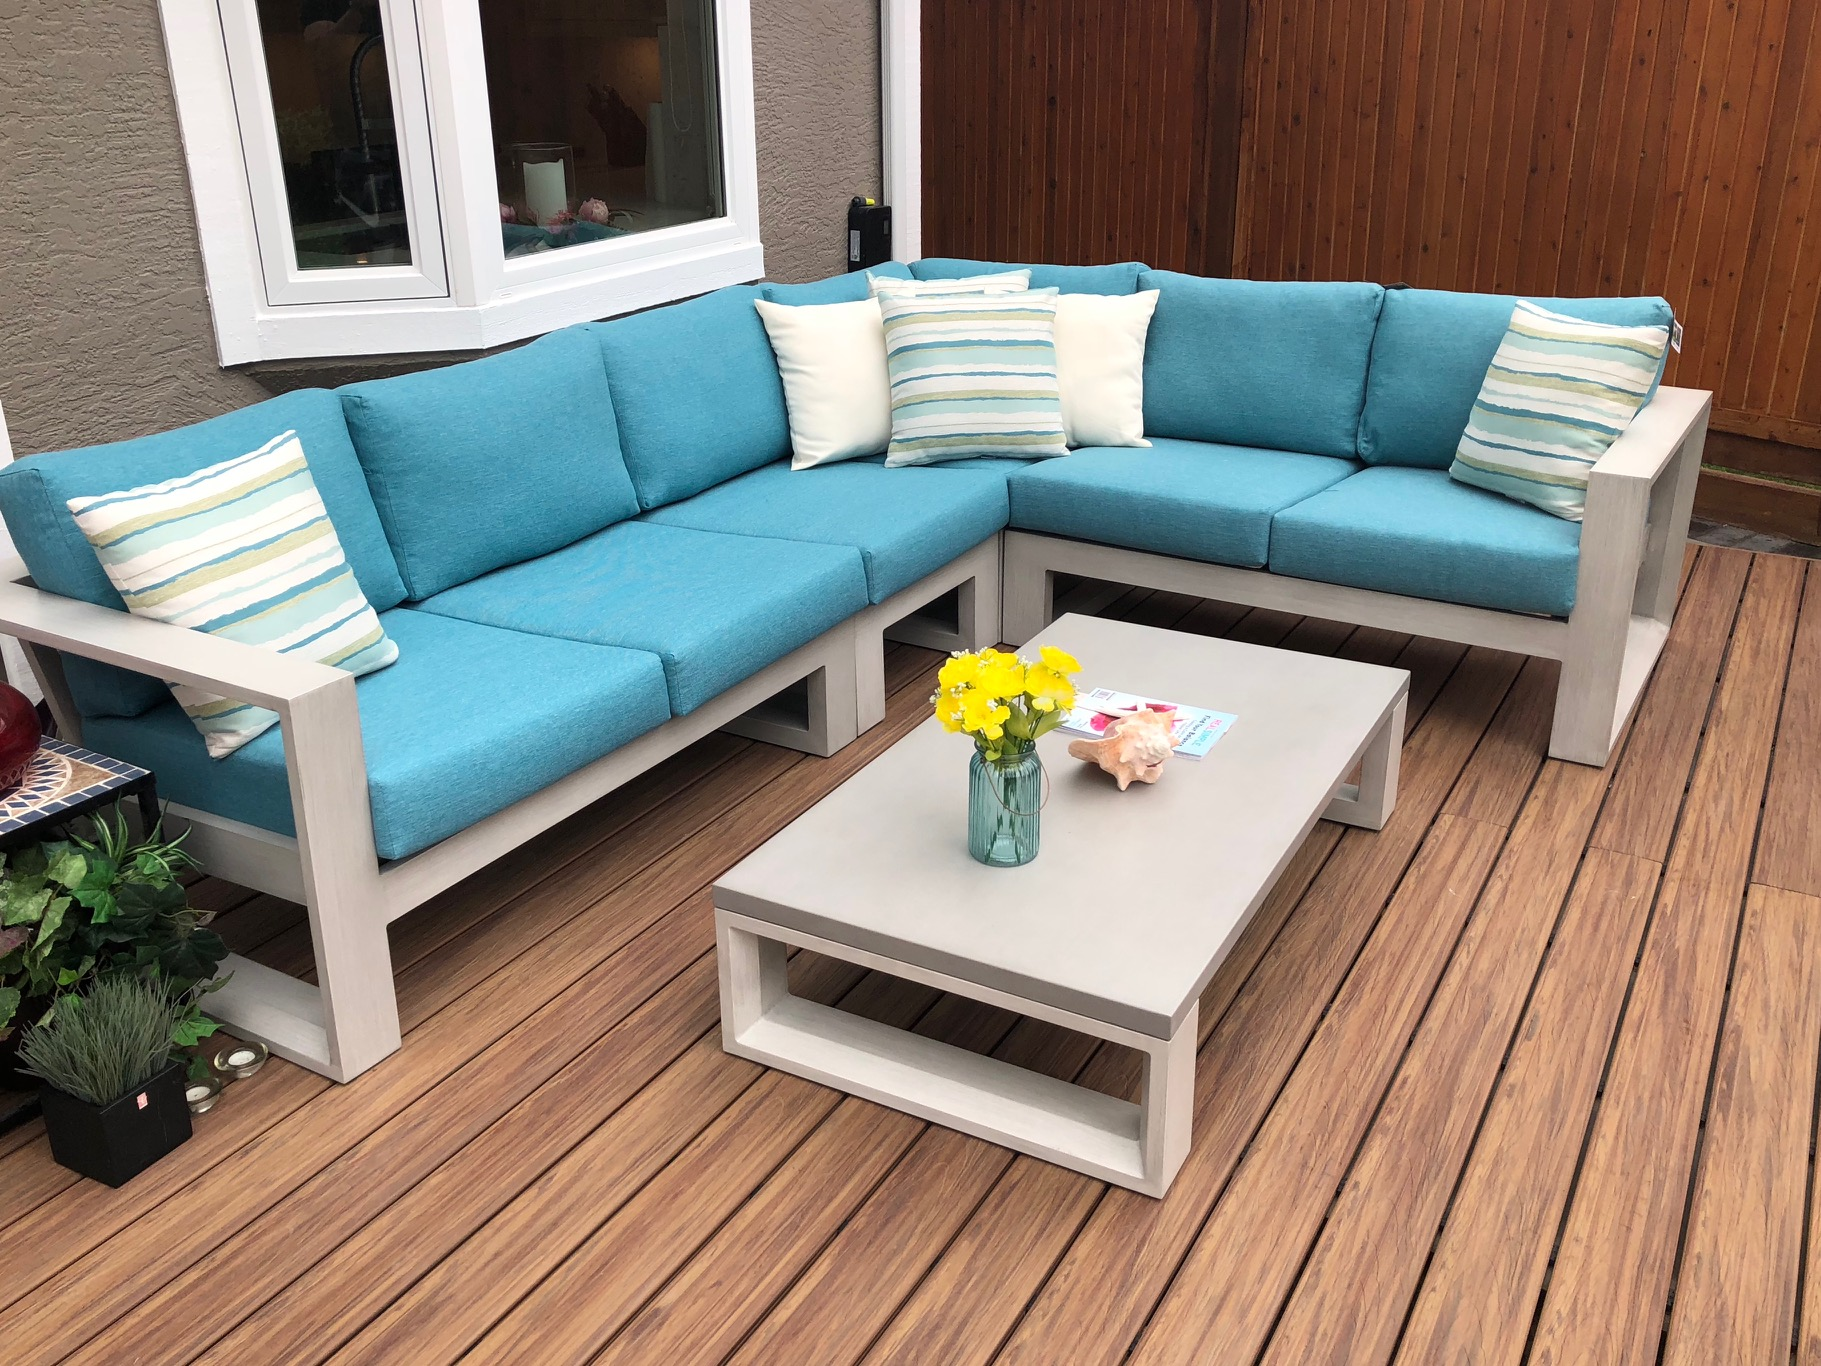 A white metal frame with blue cushions Element patio sectional with coffee table on a wood deck.